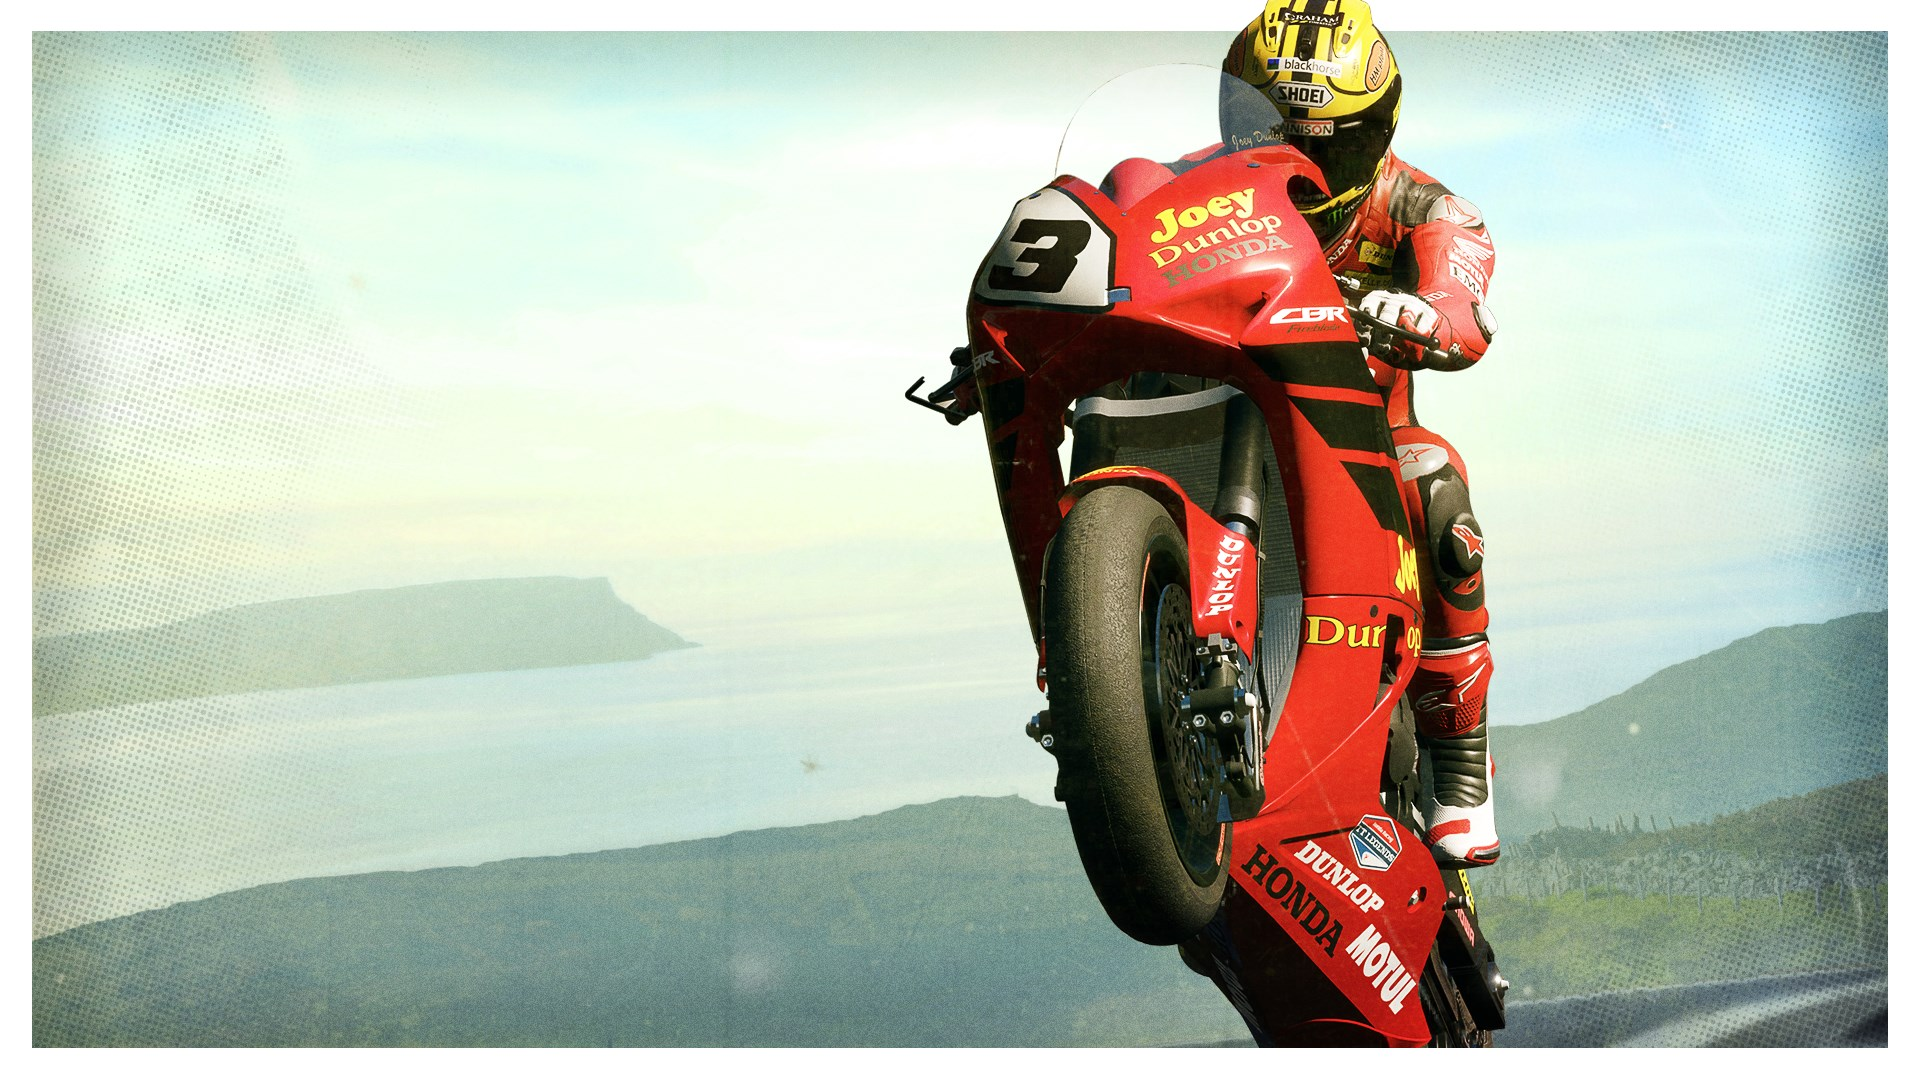 TT Isle of Man - KING OF THE MOUNTAIN - Honda 'TT Legends' CBR1000RR Fireblade